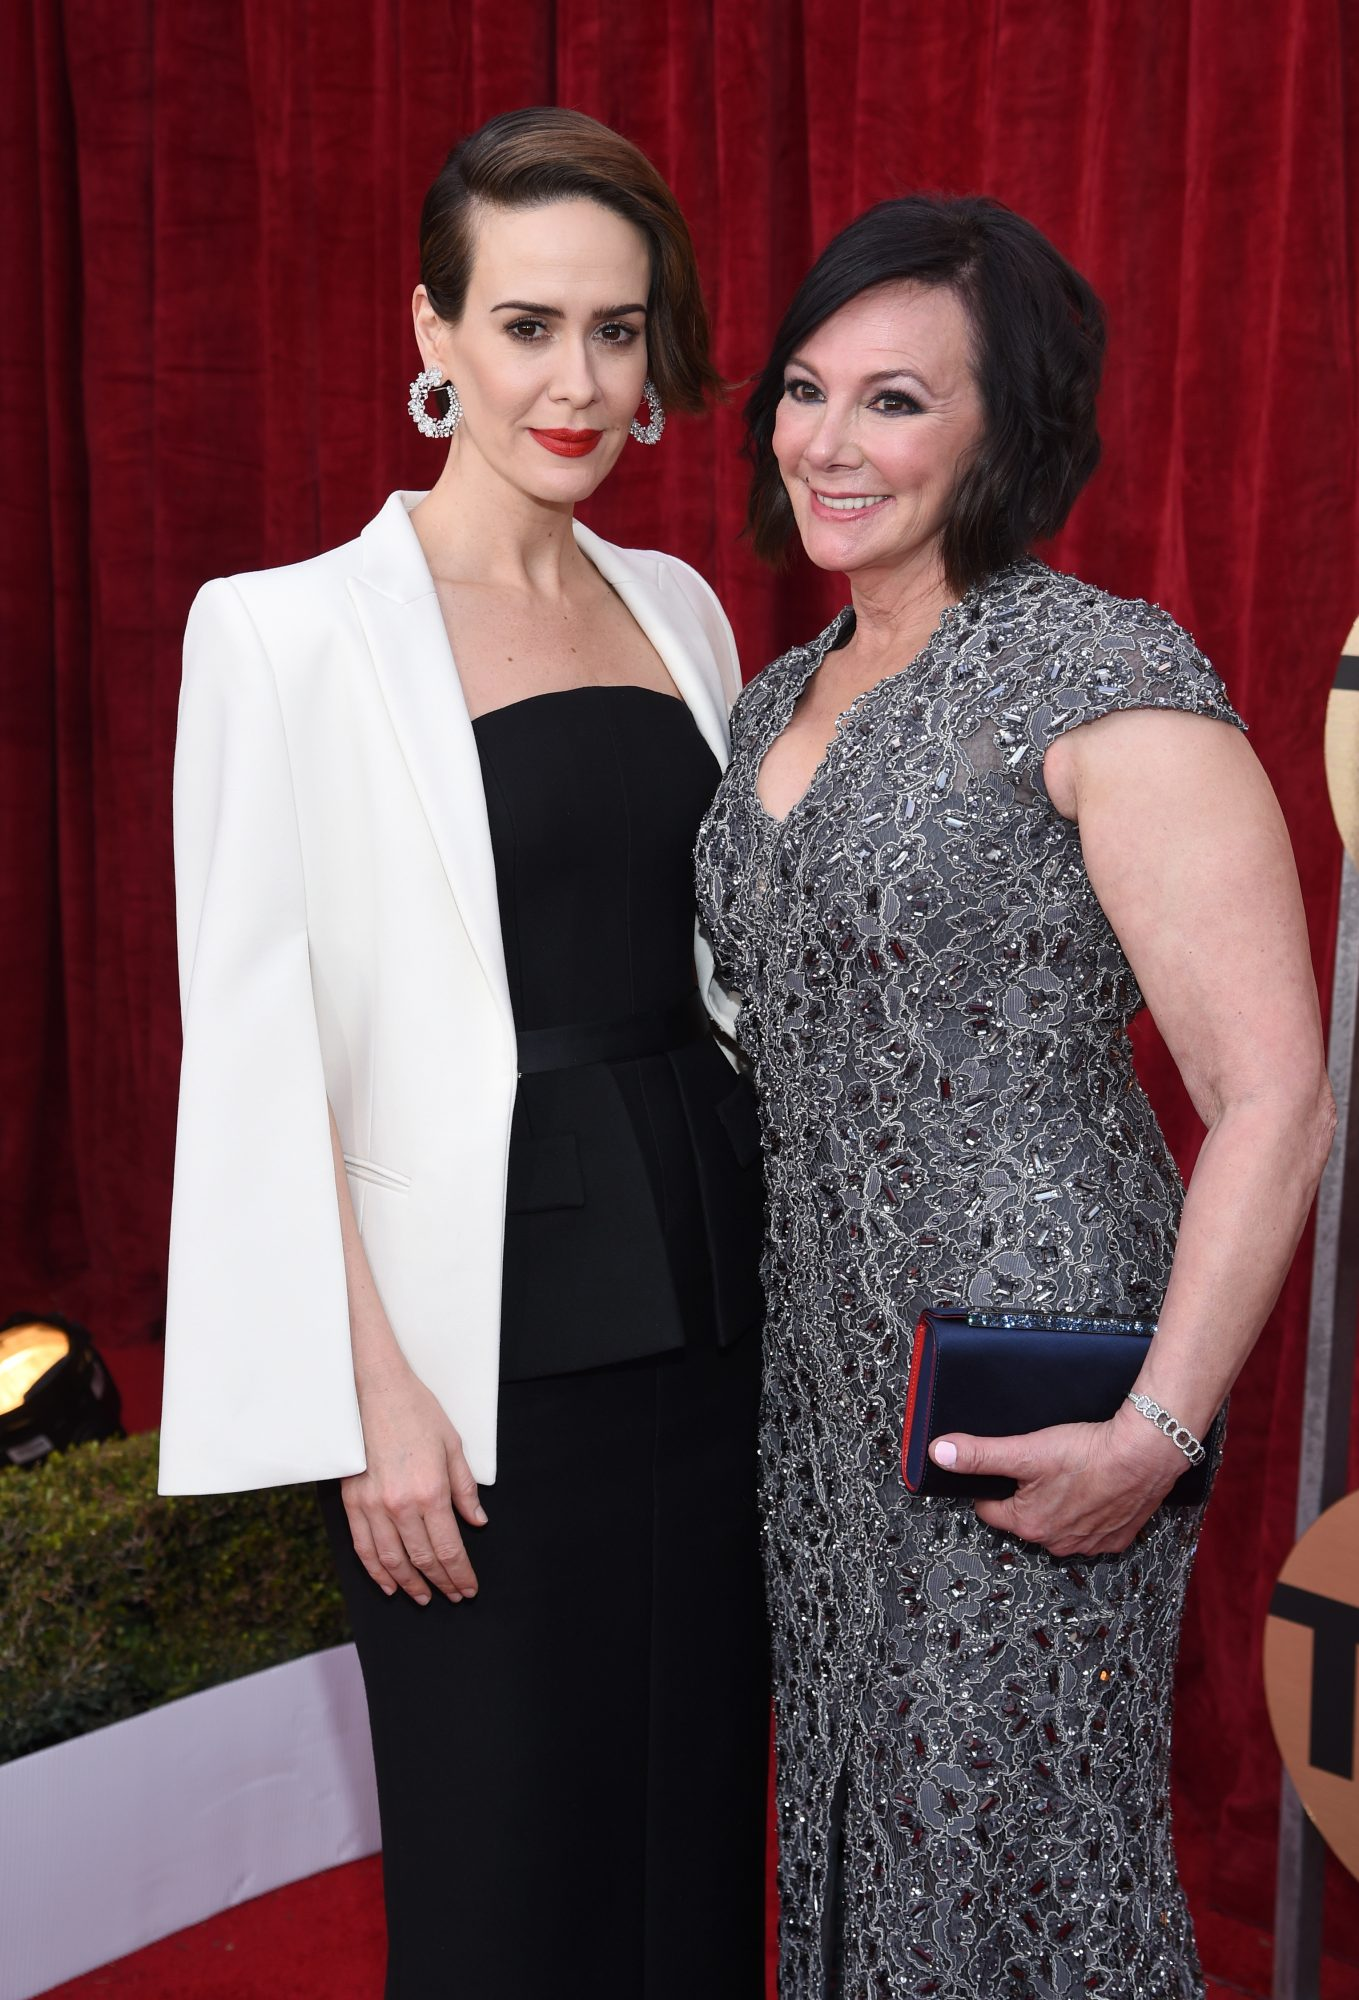 LOS ANGELES, CA - JANUARY 29: Actor Sarah Paulson (L) and Marcia Clark attend The 23rd Annual Screen Actors Guild Awards at The Shrine Auditorium on January 29, 2017 in Los Angeles, California. 26592_009 (Photo by Dimitrios Kambouris/Getty Images for TNT)